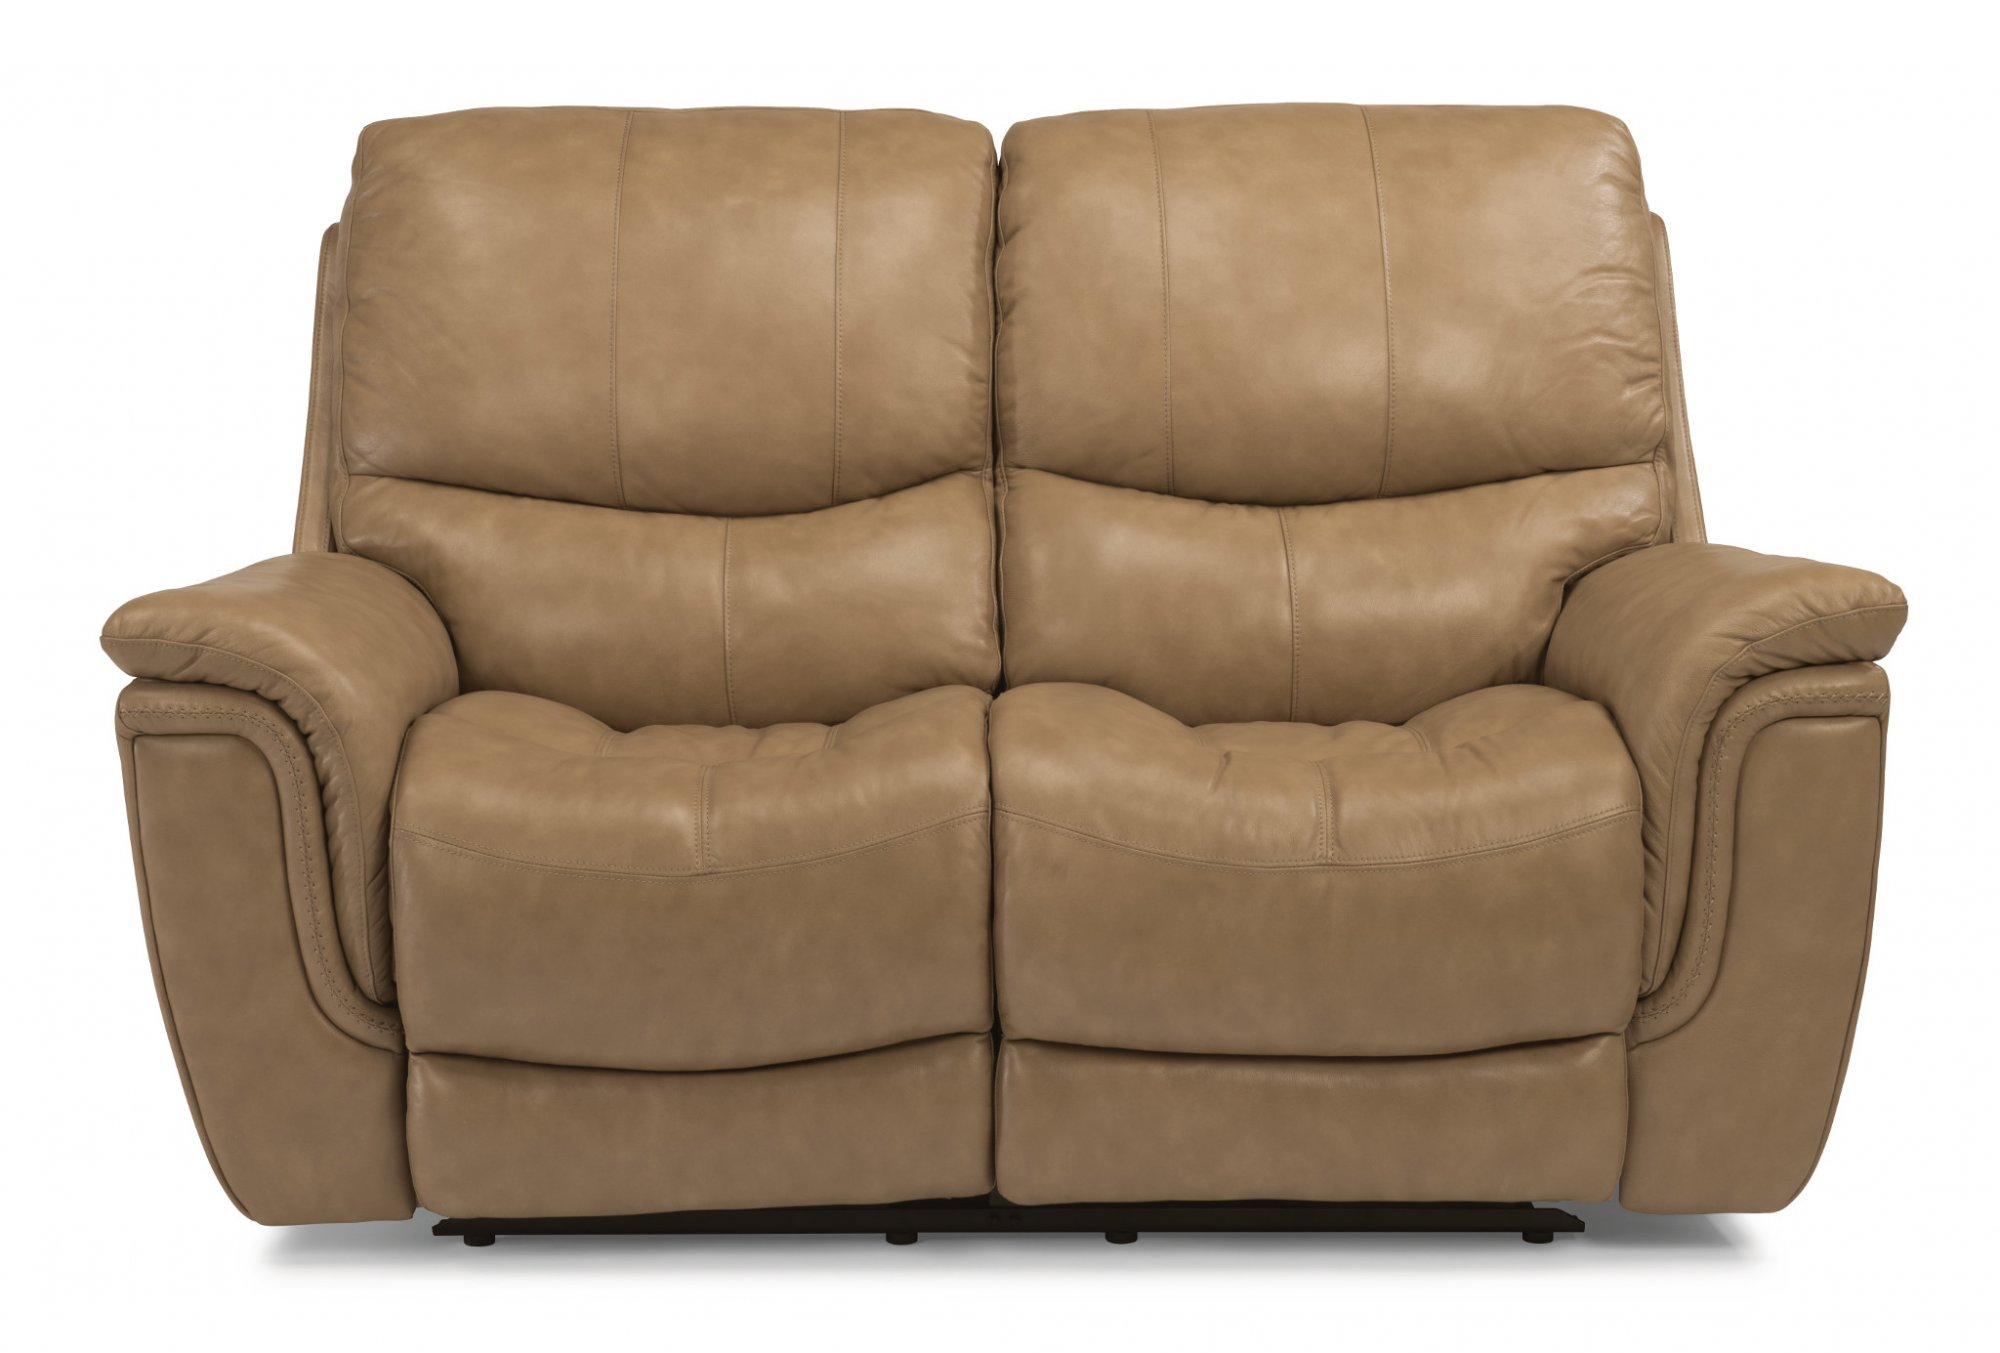 Reclining Chairs & Sofas